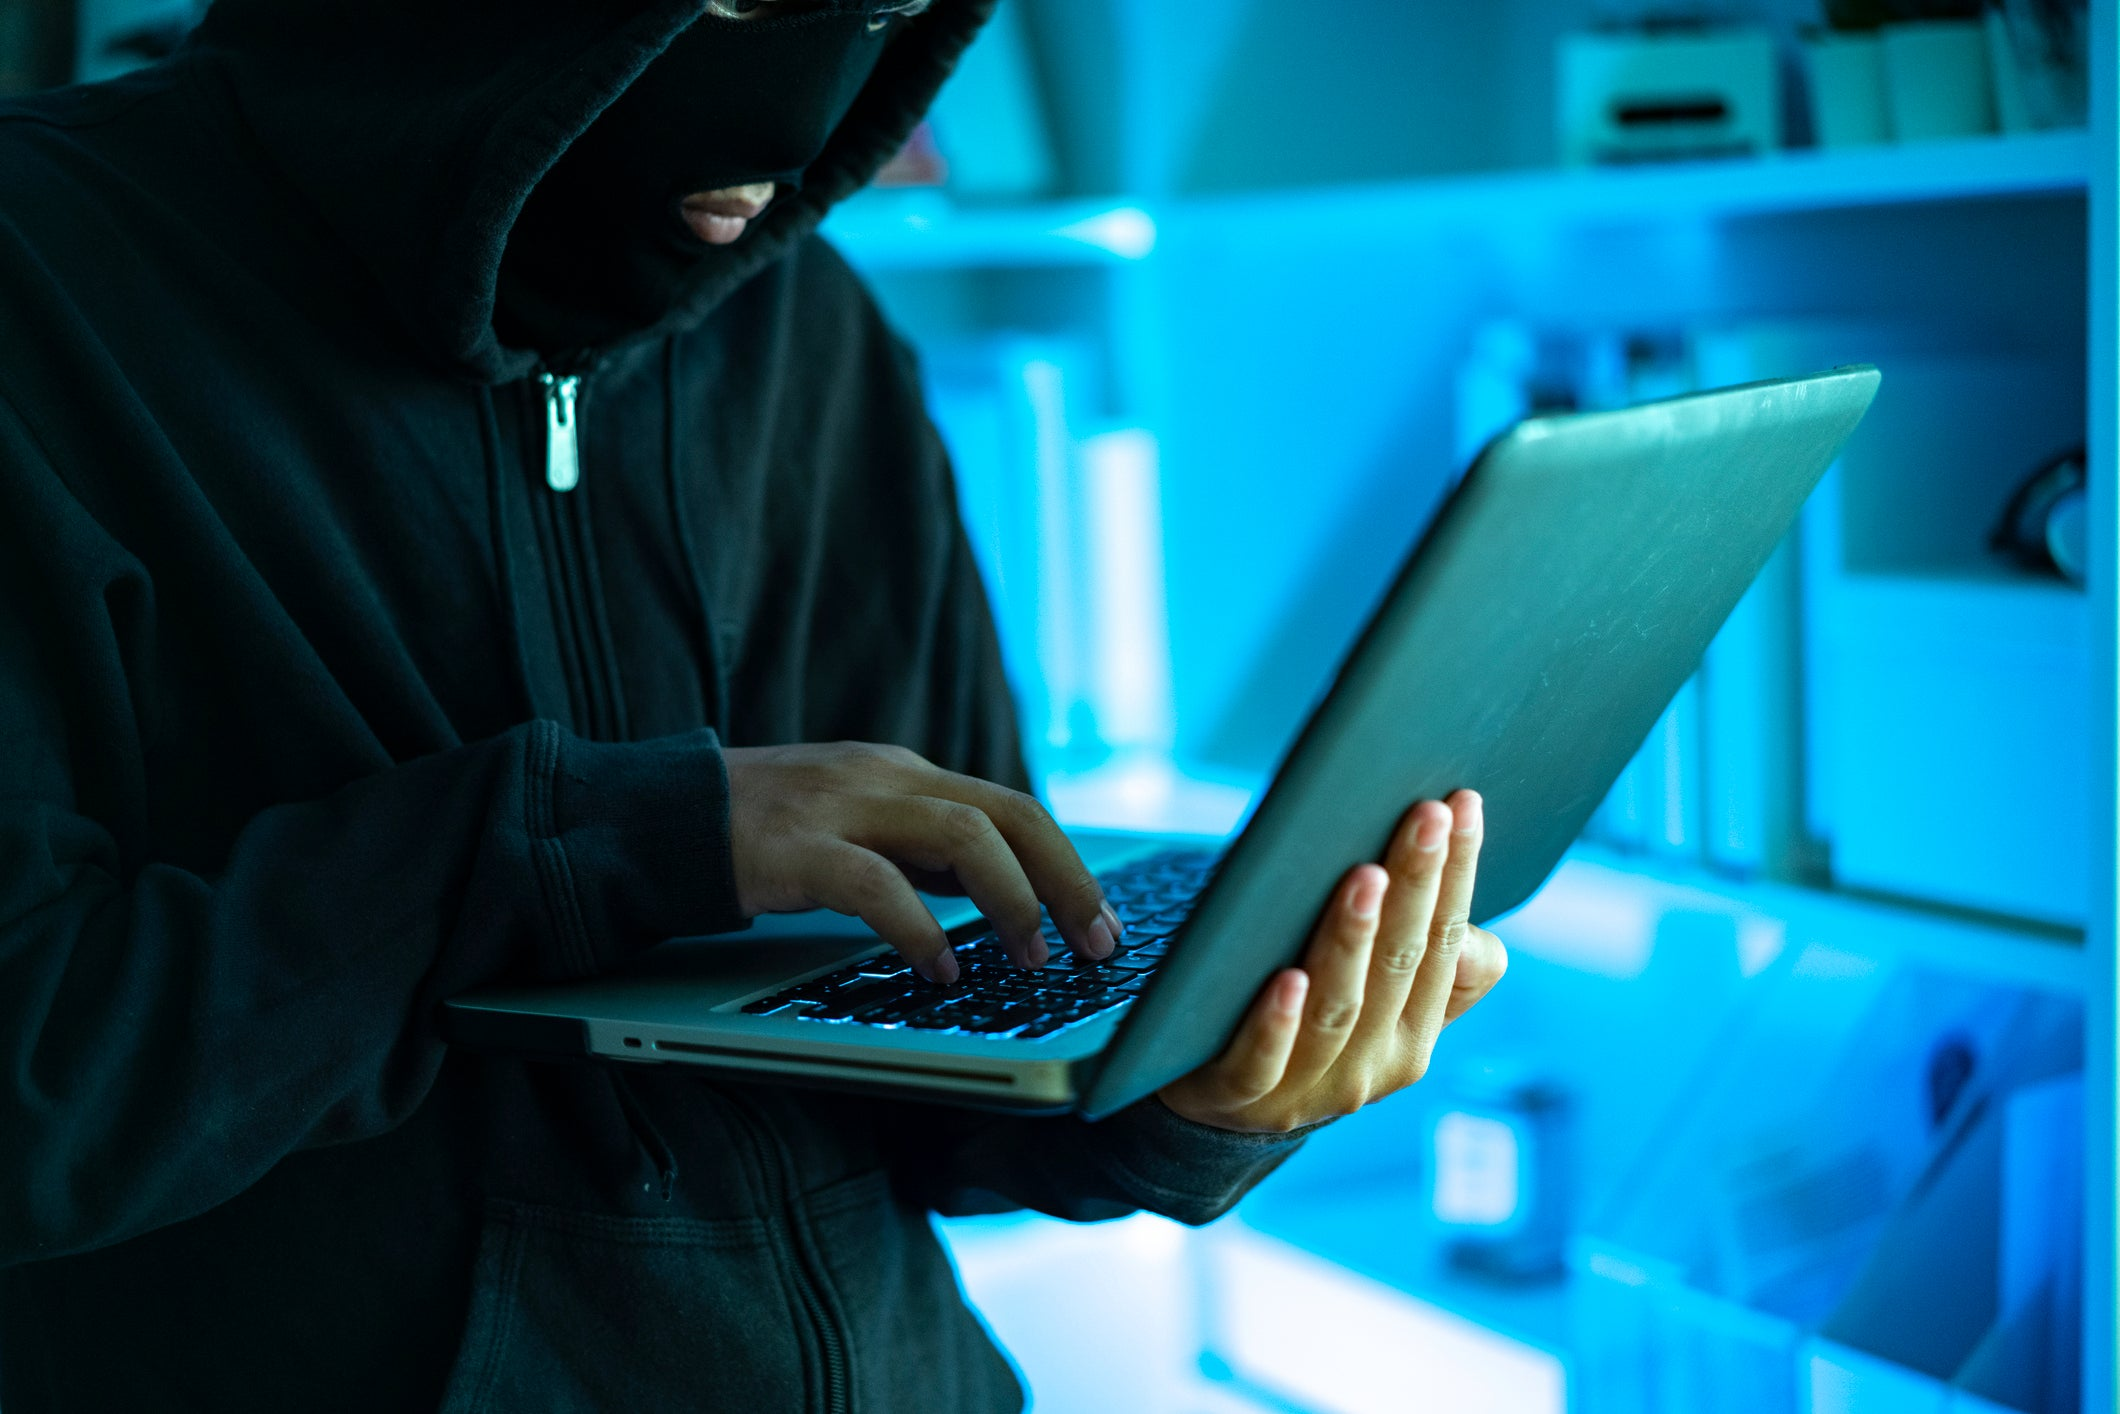 Here's What You Should Do If Your Home Security System Is Breached image